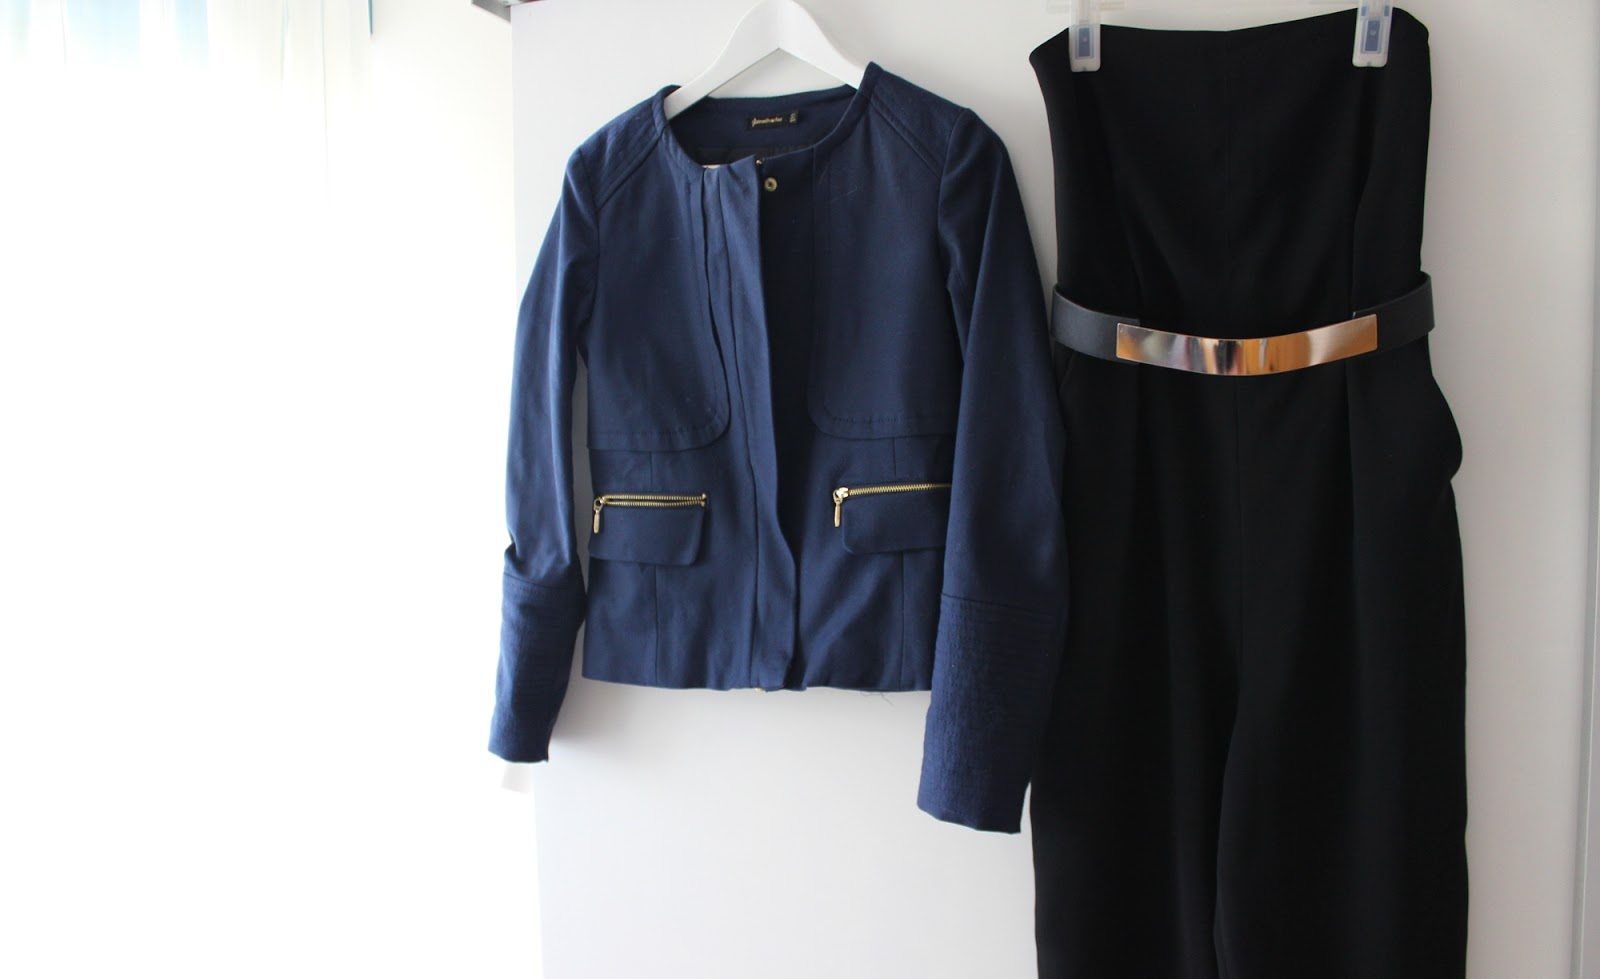 Barcelona shopping haul zara stradivarius jumpsuit blazer black bandeau